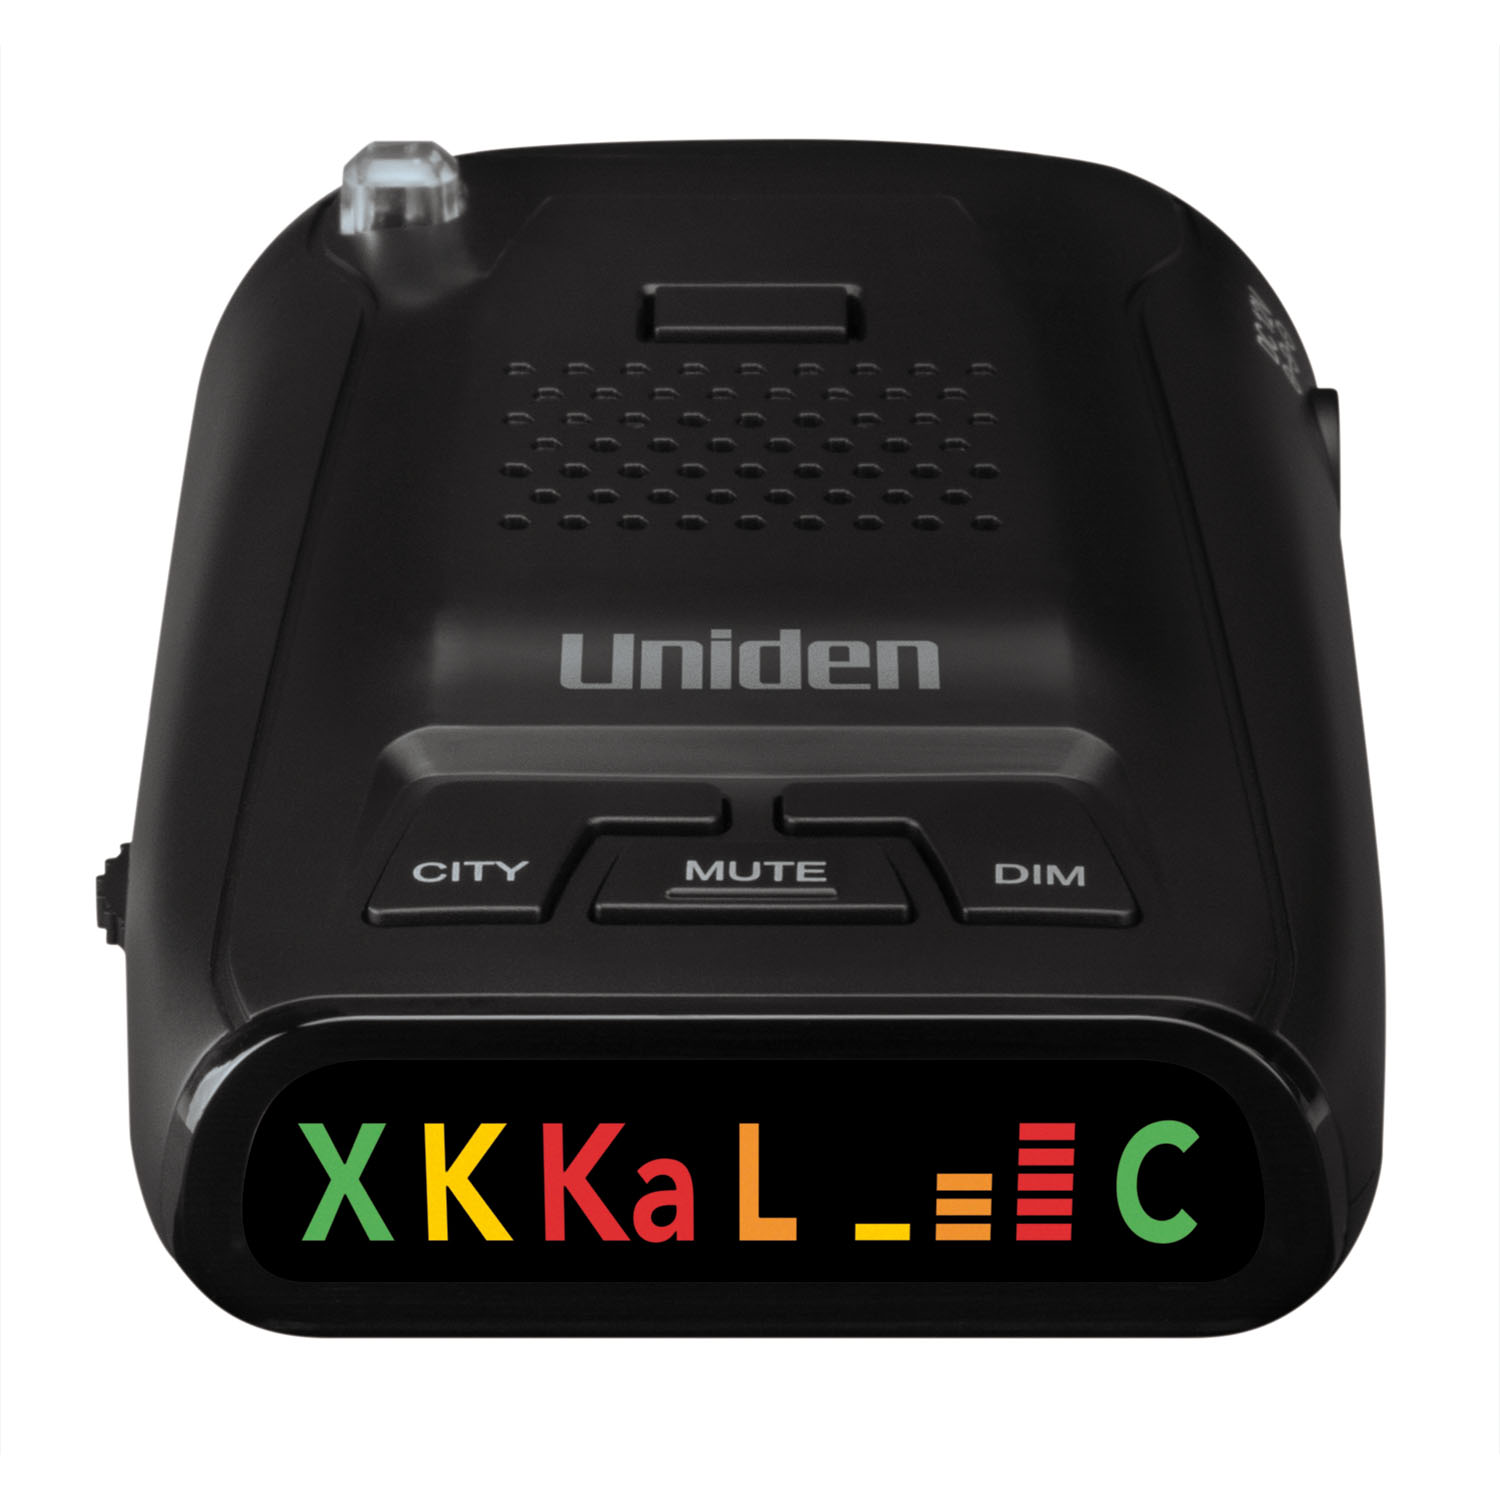 UNIDEN - LONG RANGE RADAR/LASER DETECTOR WITH 360-+ PROTECTION FROM ALL RADAR & LASER GUNS, HIGHWAY/CITY MODES, MUTE & BRIGHT/DI